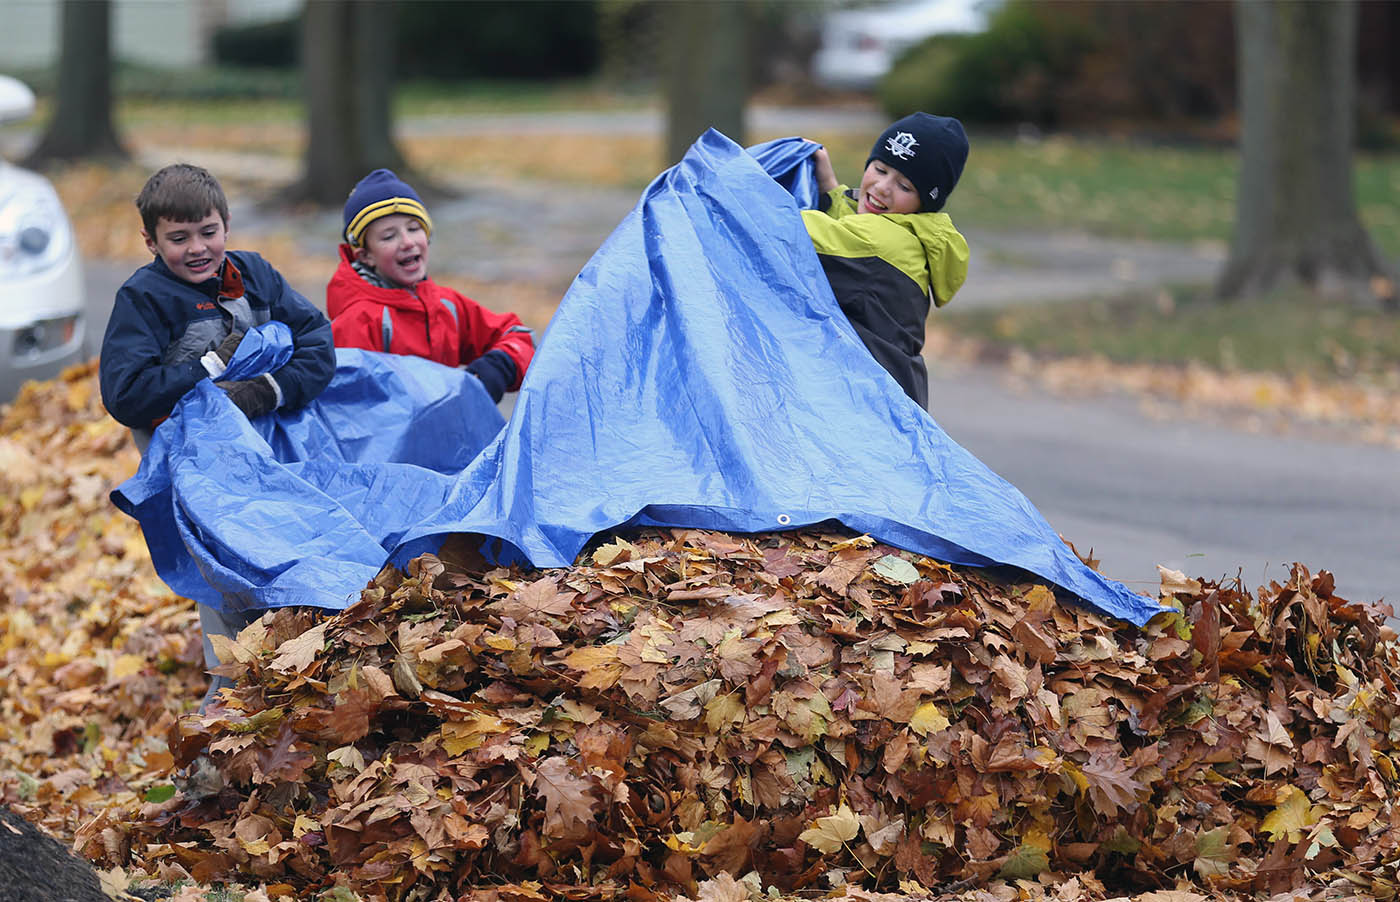 The Morse brothers with the help of their cousin visiting from Florida help their dad with leaf cleanup, Wednesday, Nov. 23, 2016.  The drag lots of leaves from backyard and deposit them on the  street for pickup on Morris Ave. in Buffalo.  From left is cousin Riley Benzenberg, 9, Andrew Morse, 8, his brother Ben Morse, 11. (Sharon Cantillon/Buffalo News)